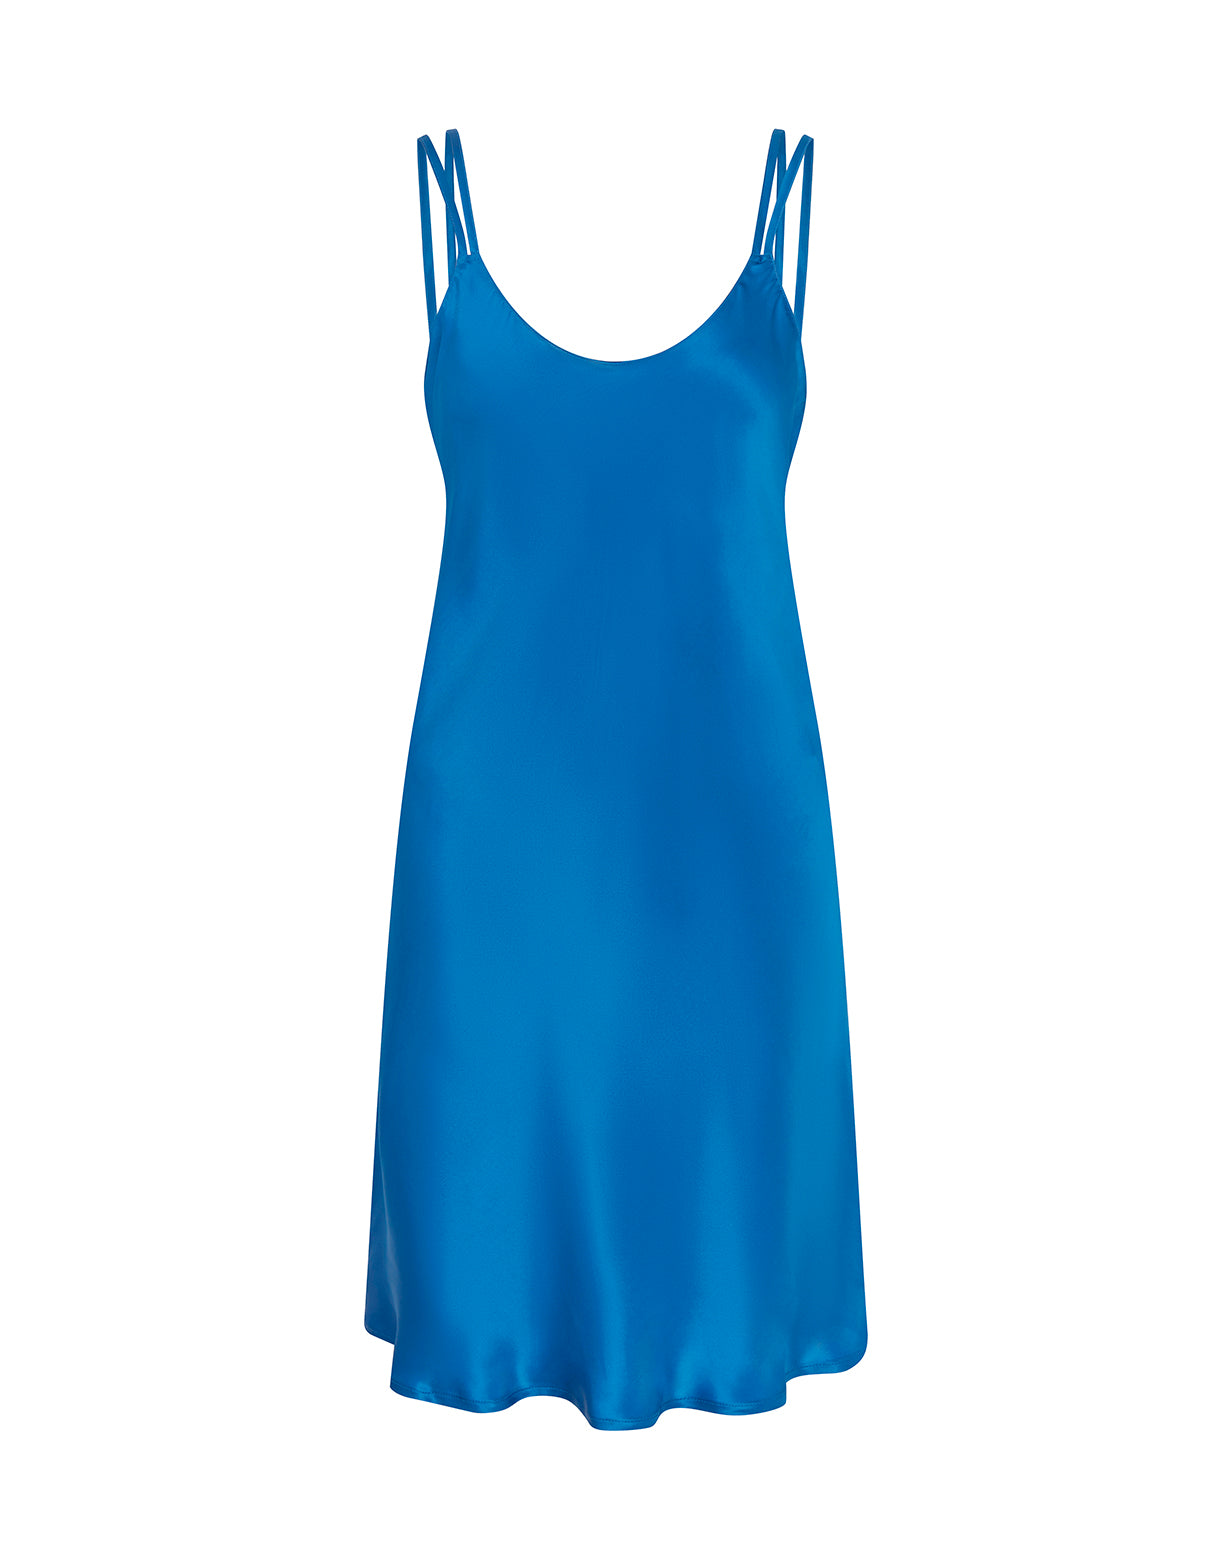 Women's Short Silk Nightdress – Peacock Blue